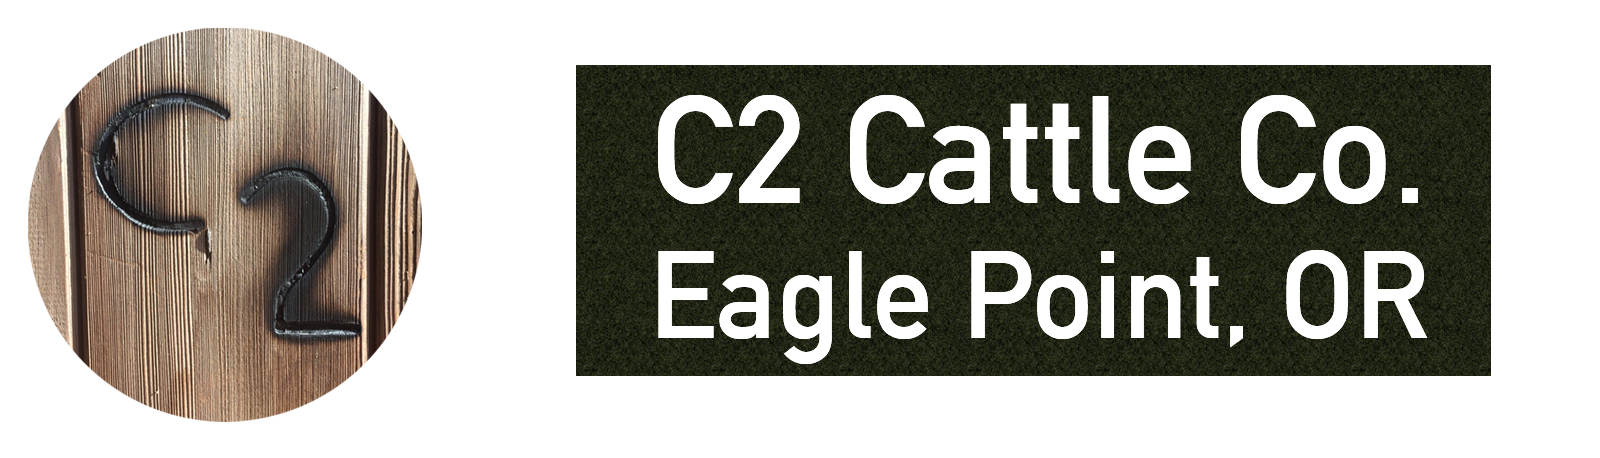 C2 Cattle Company